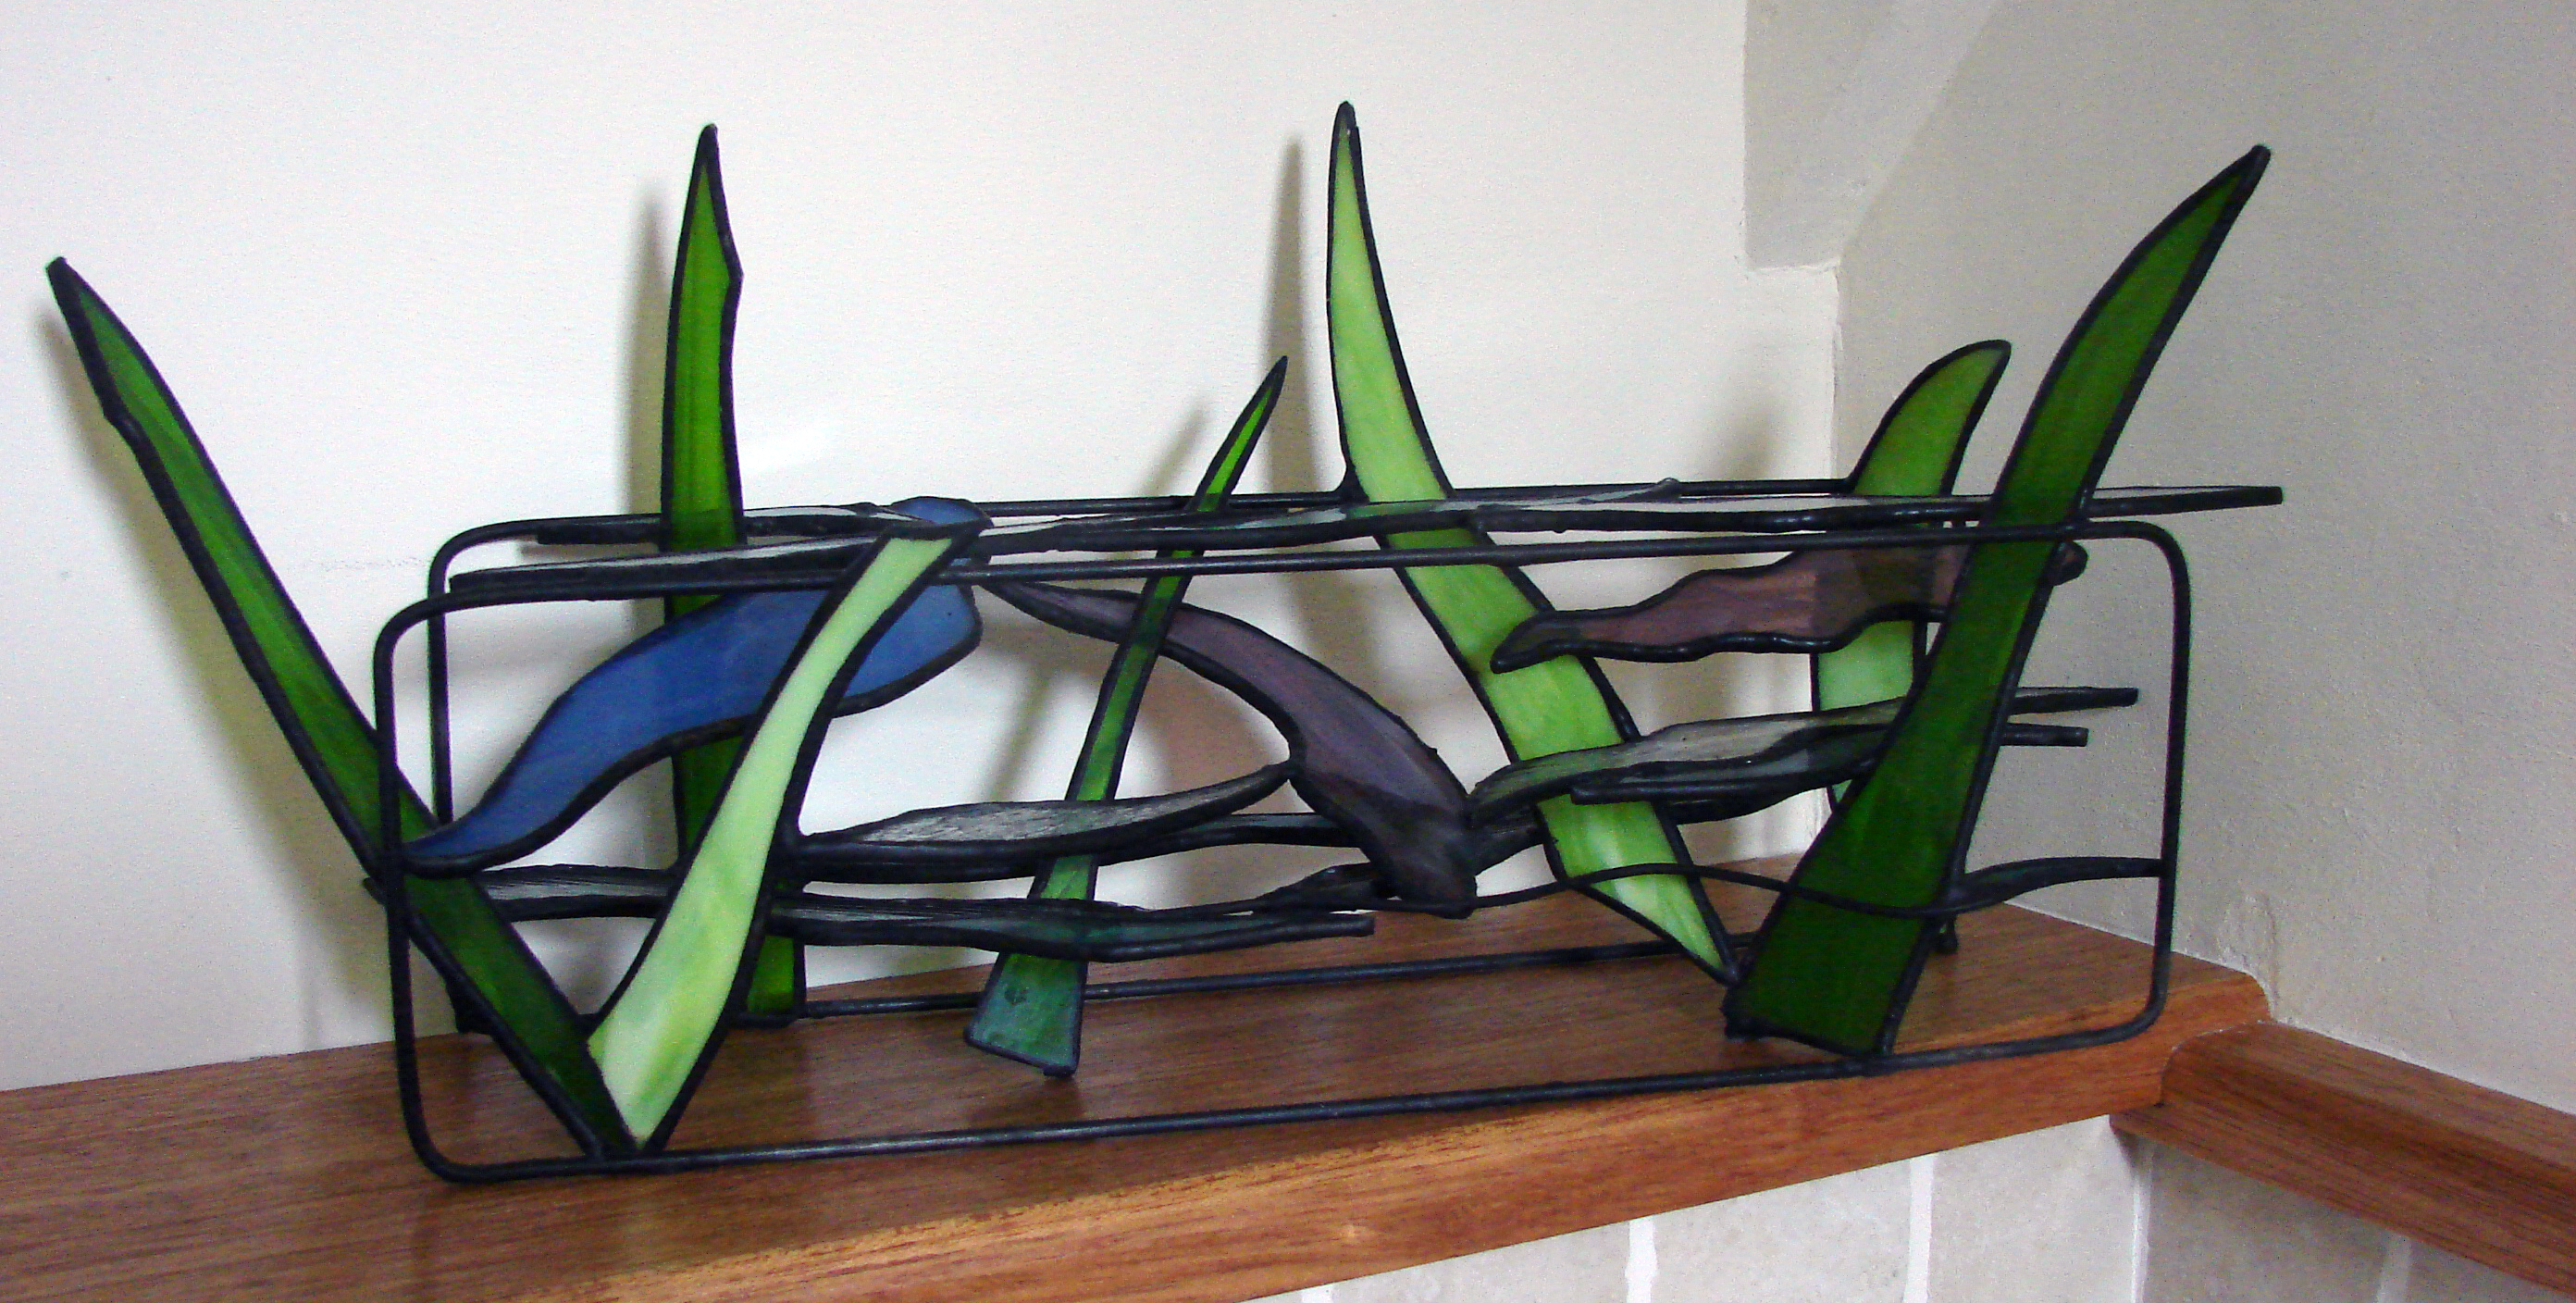 Flow, 2006, tiffany sculpture